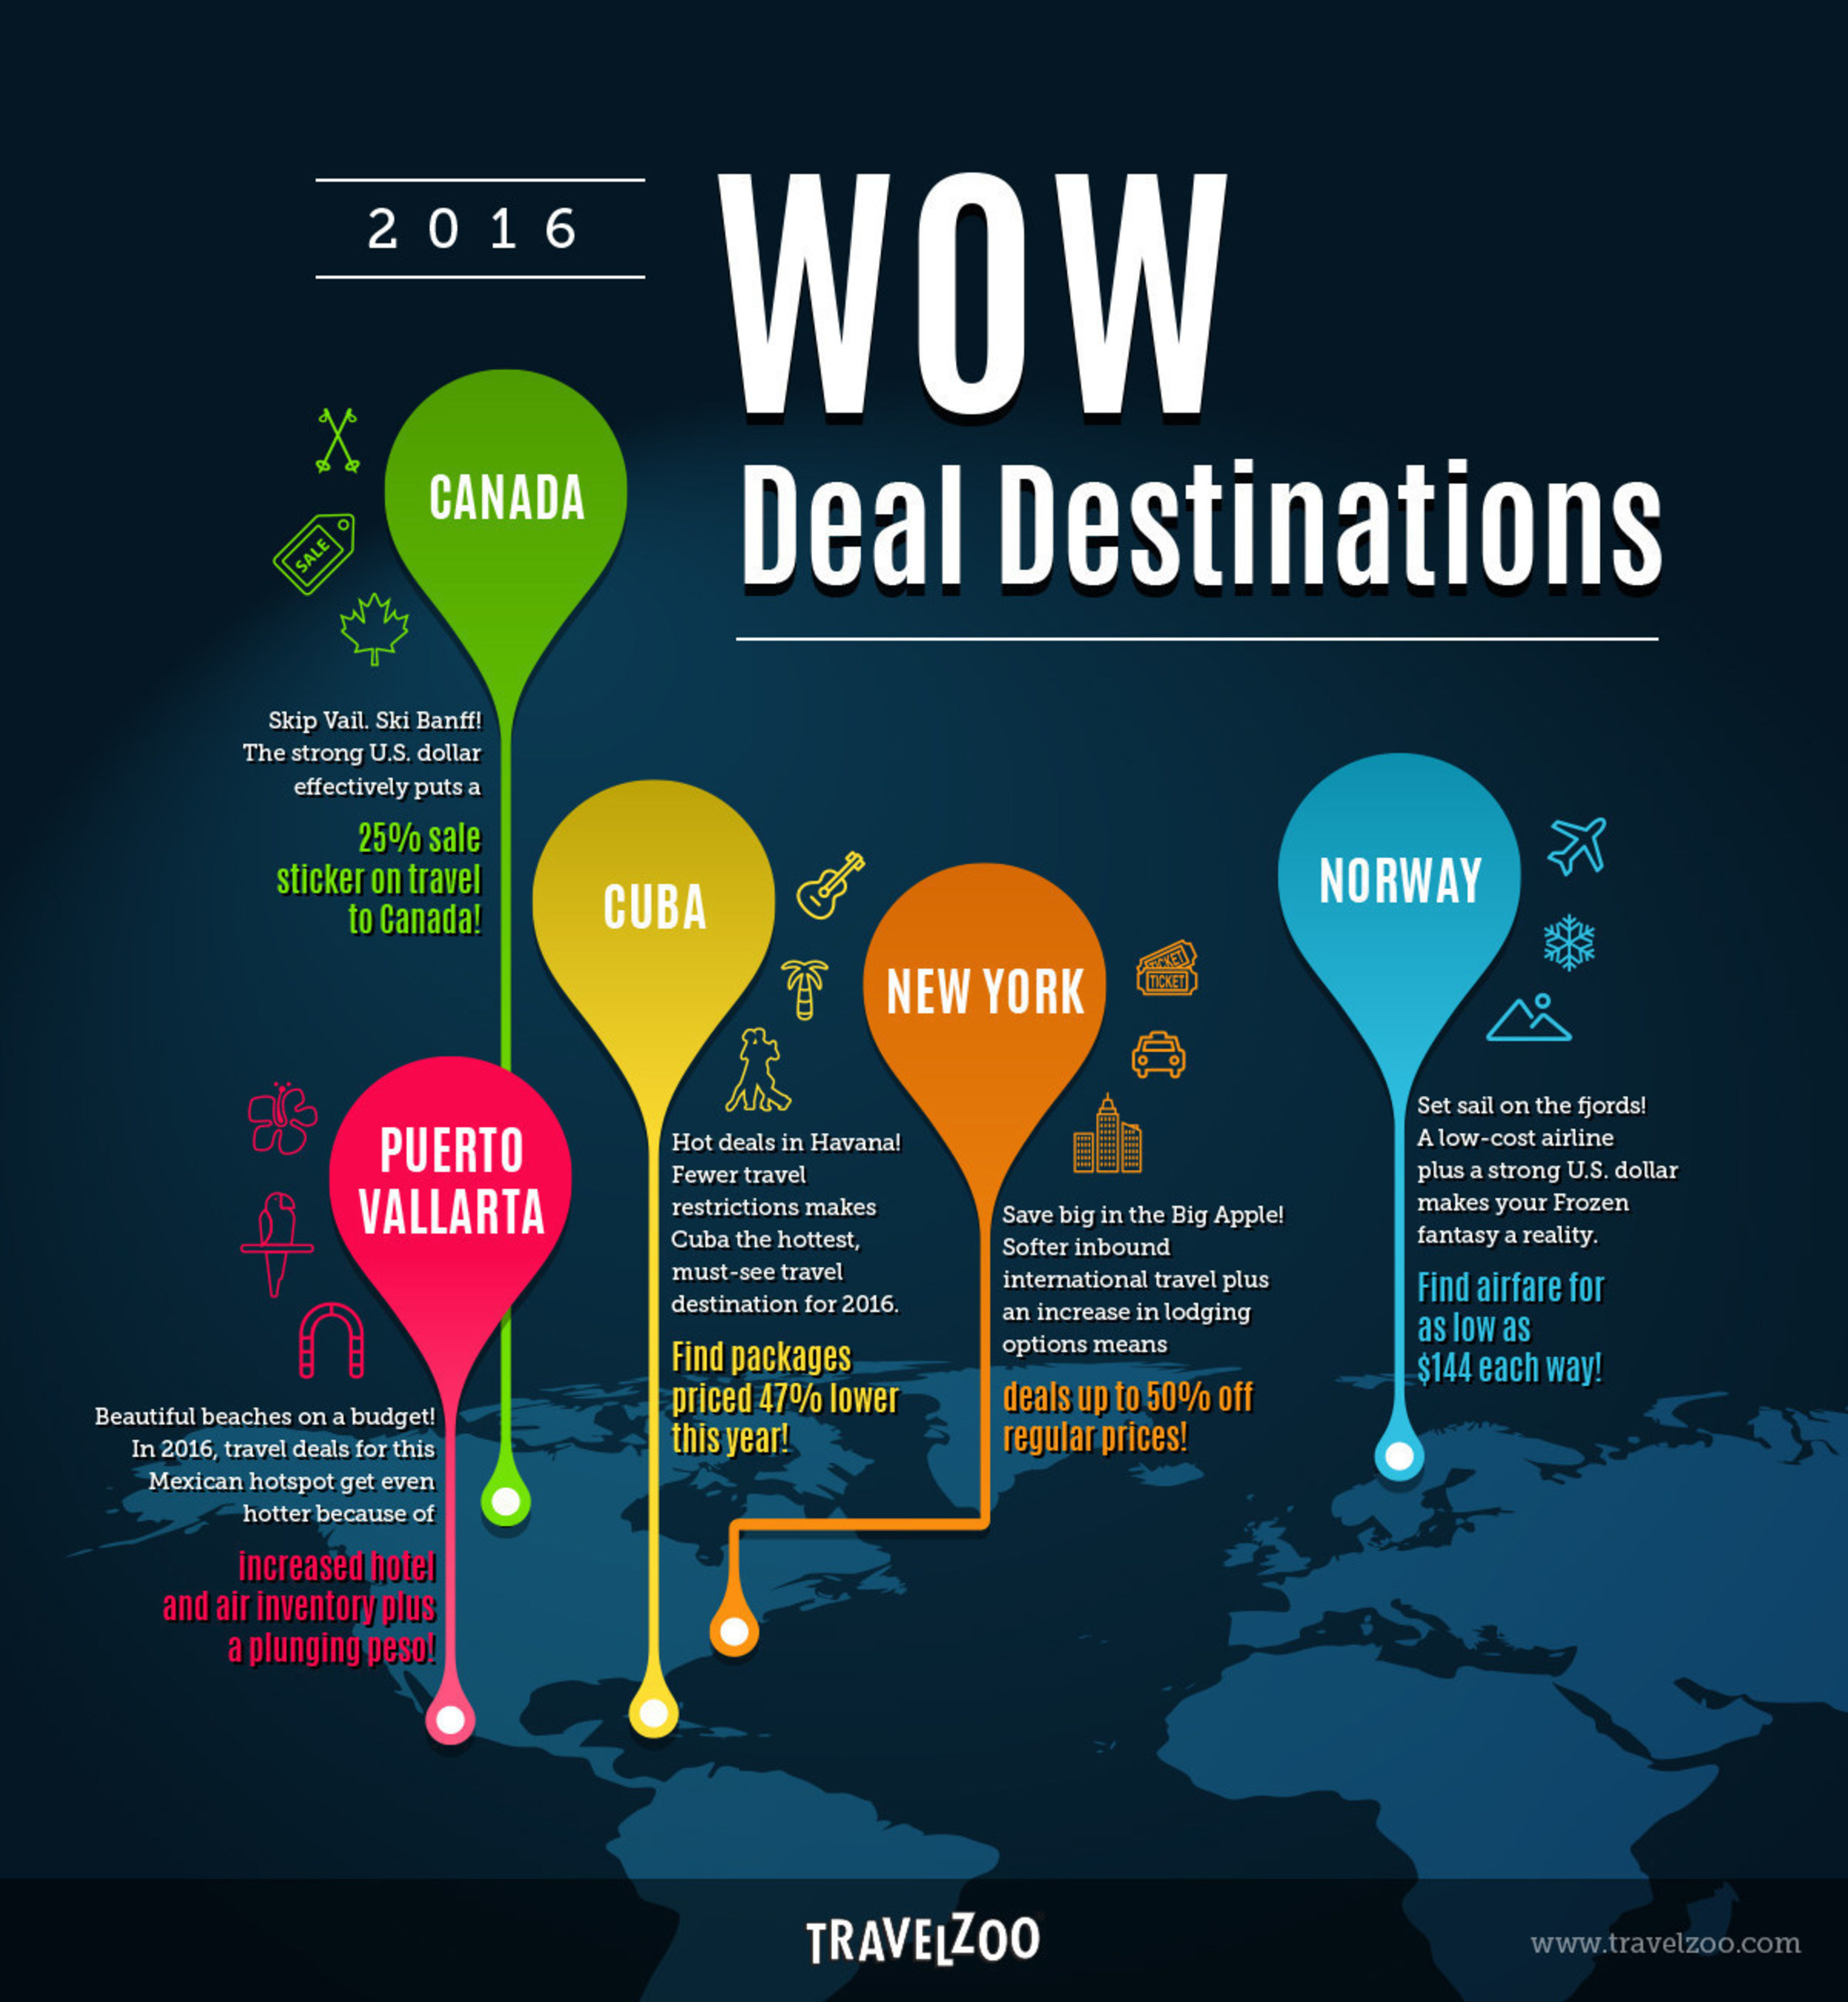 Travelzoo Predicts the Top Five Wow Deal Destinations for 2016